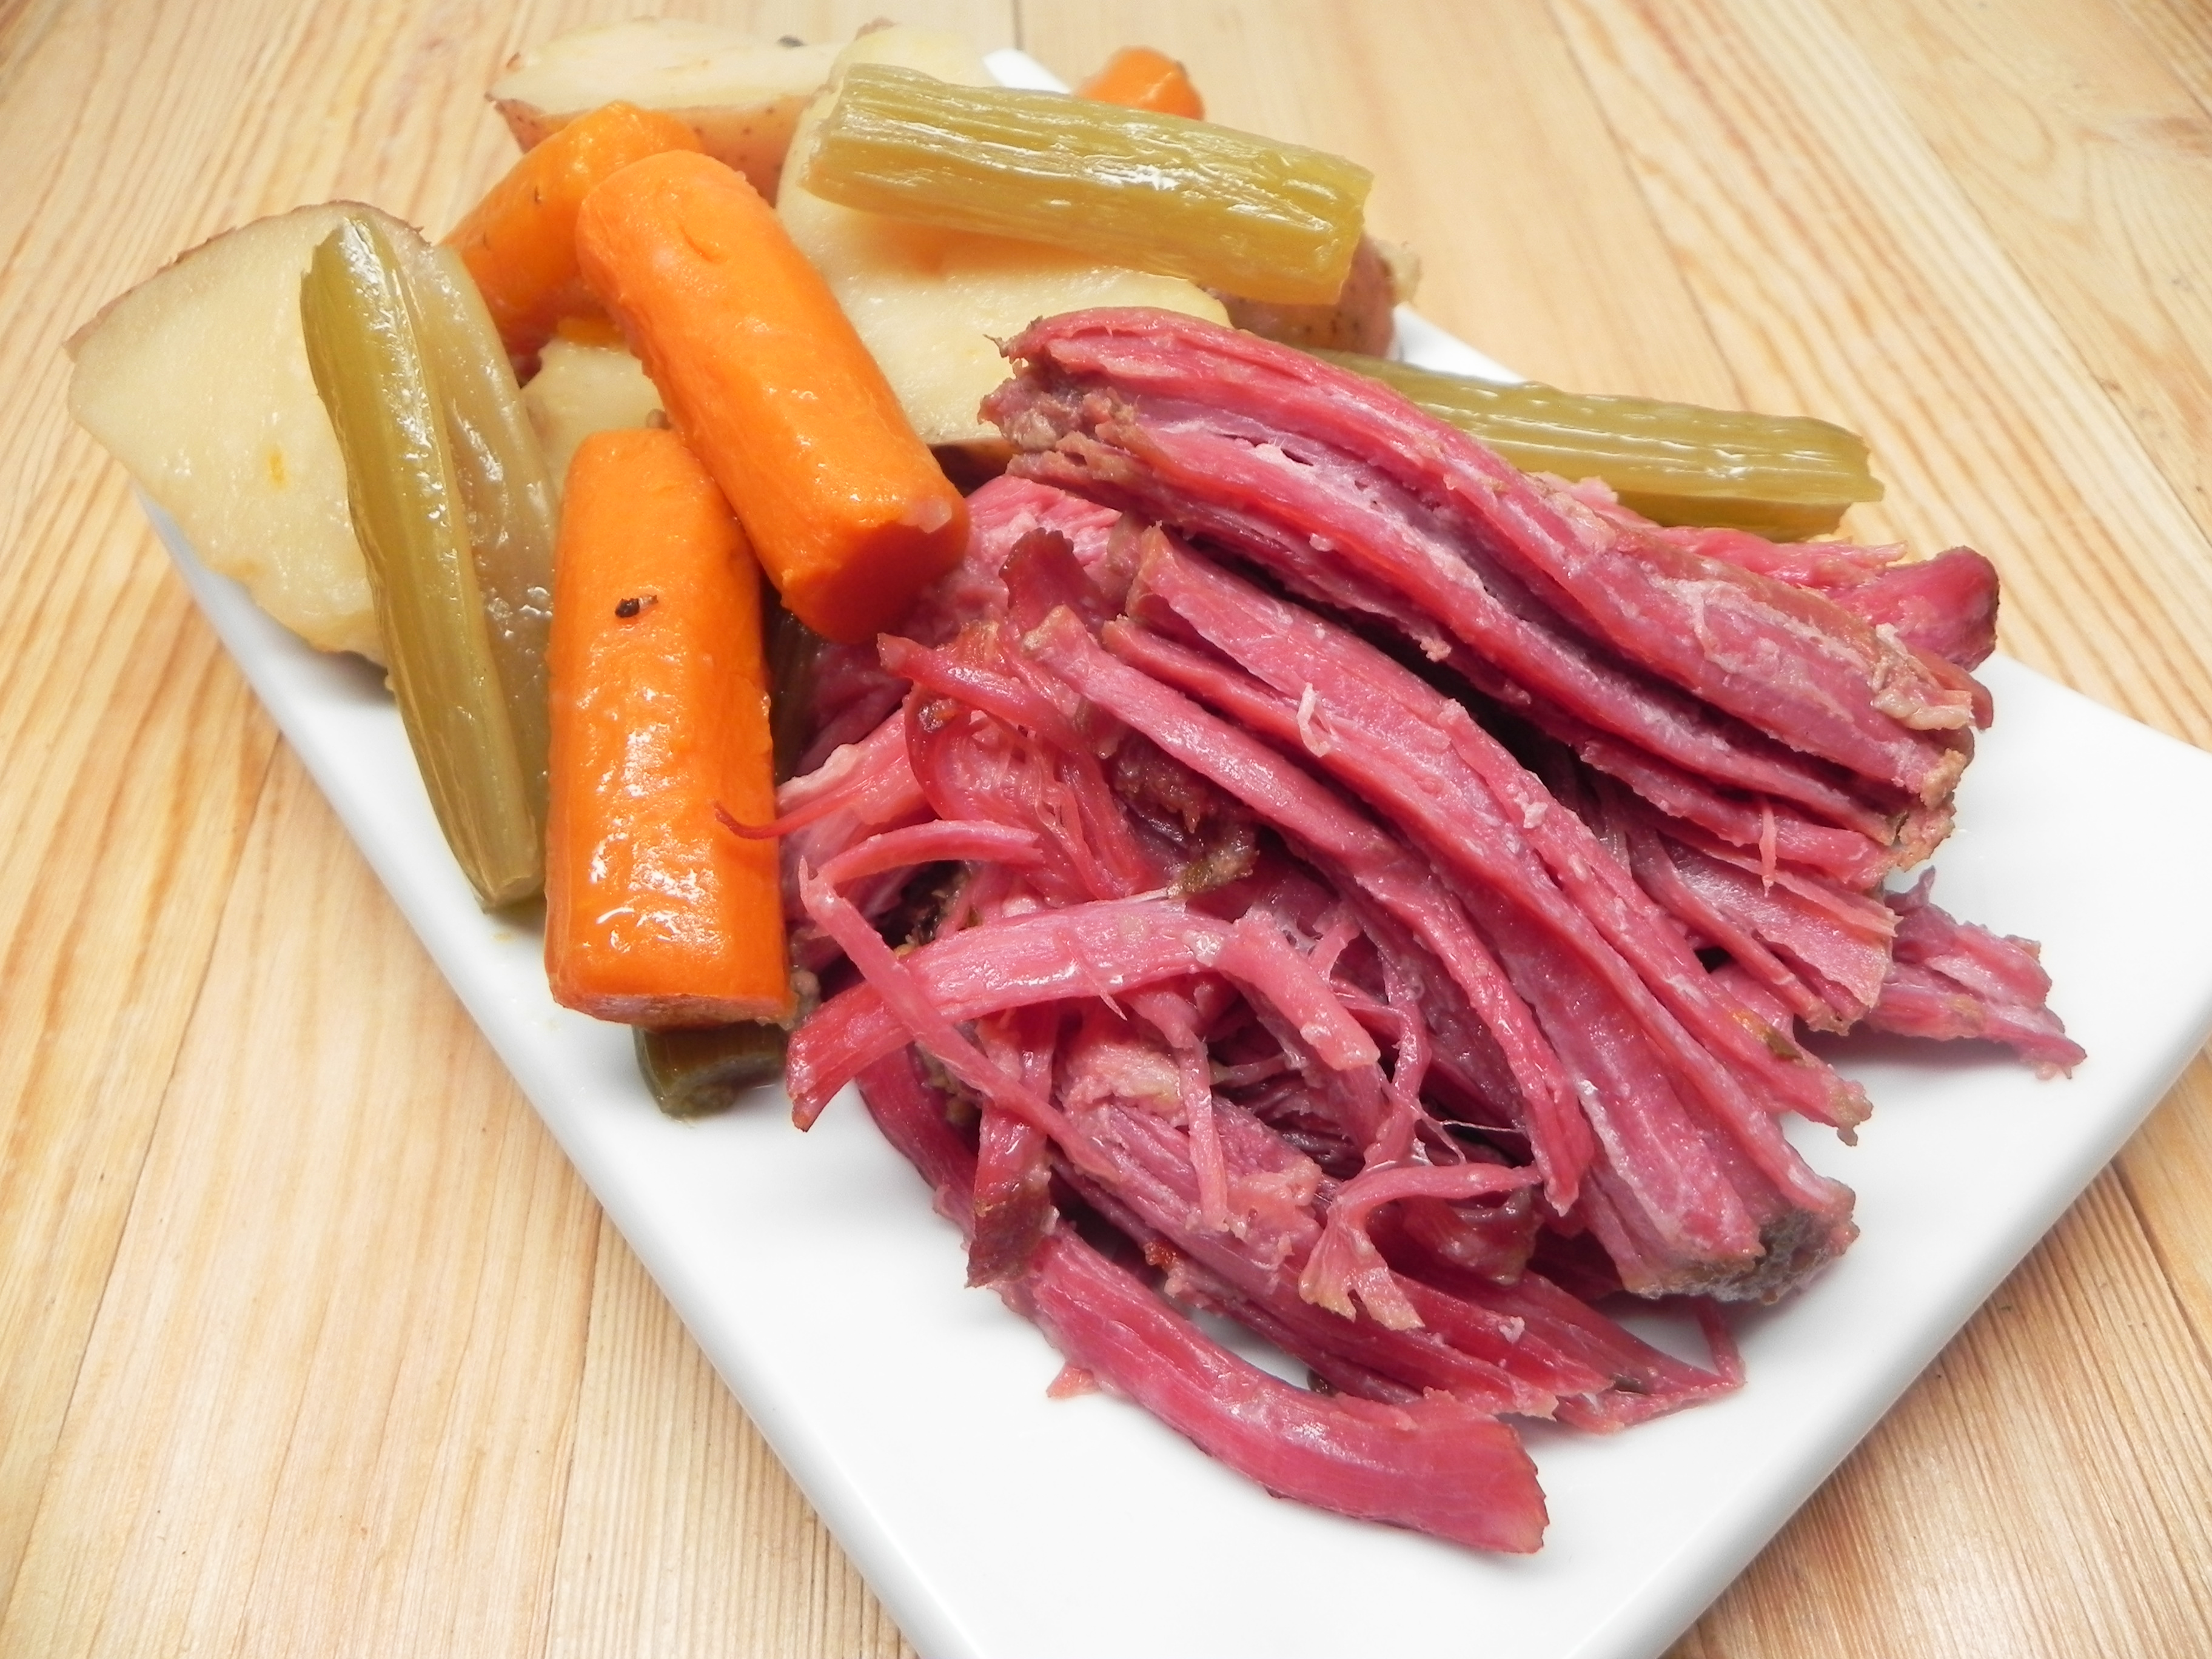 Sarah S Slow Cooker Corned Beef And Cabbage Recipe Allrecipes